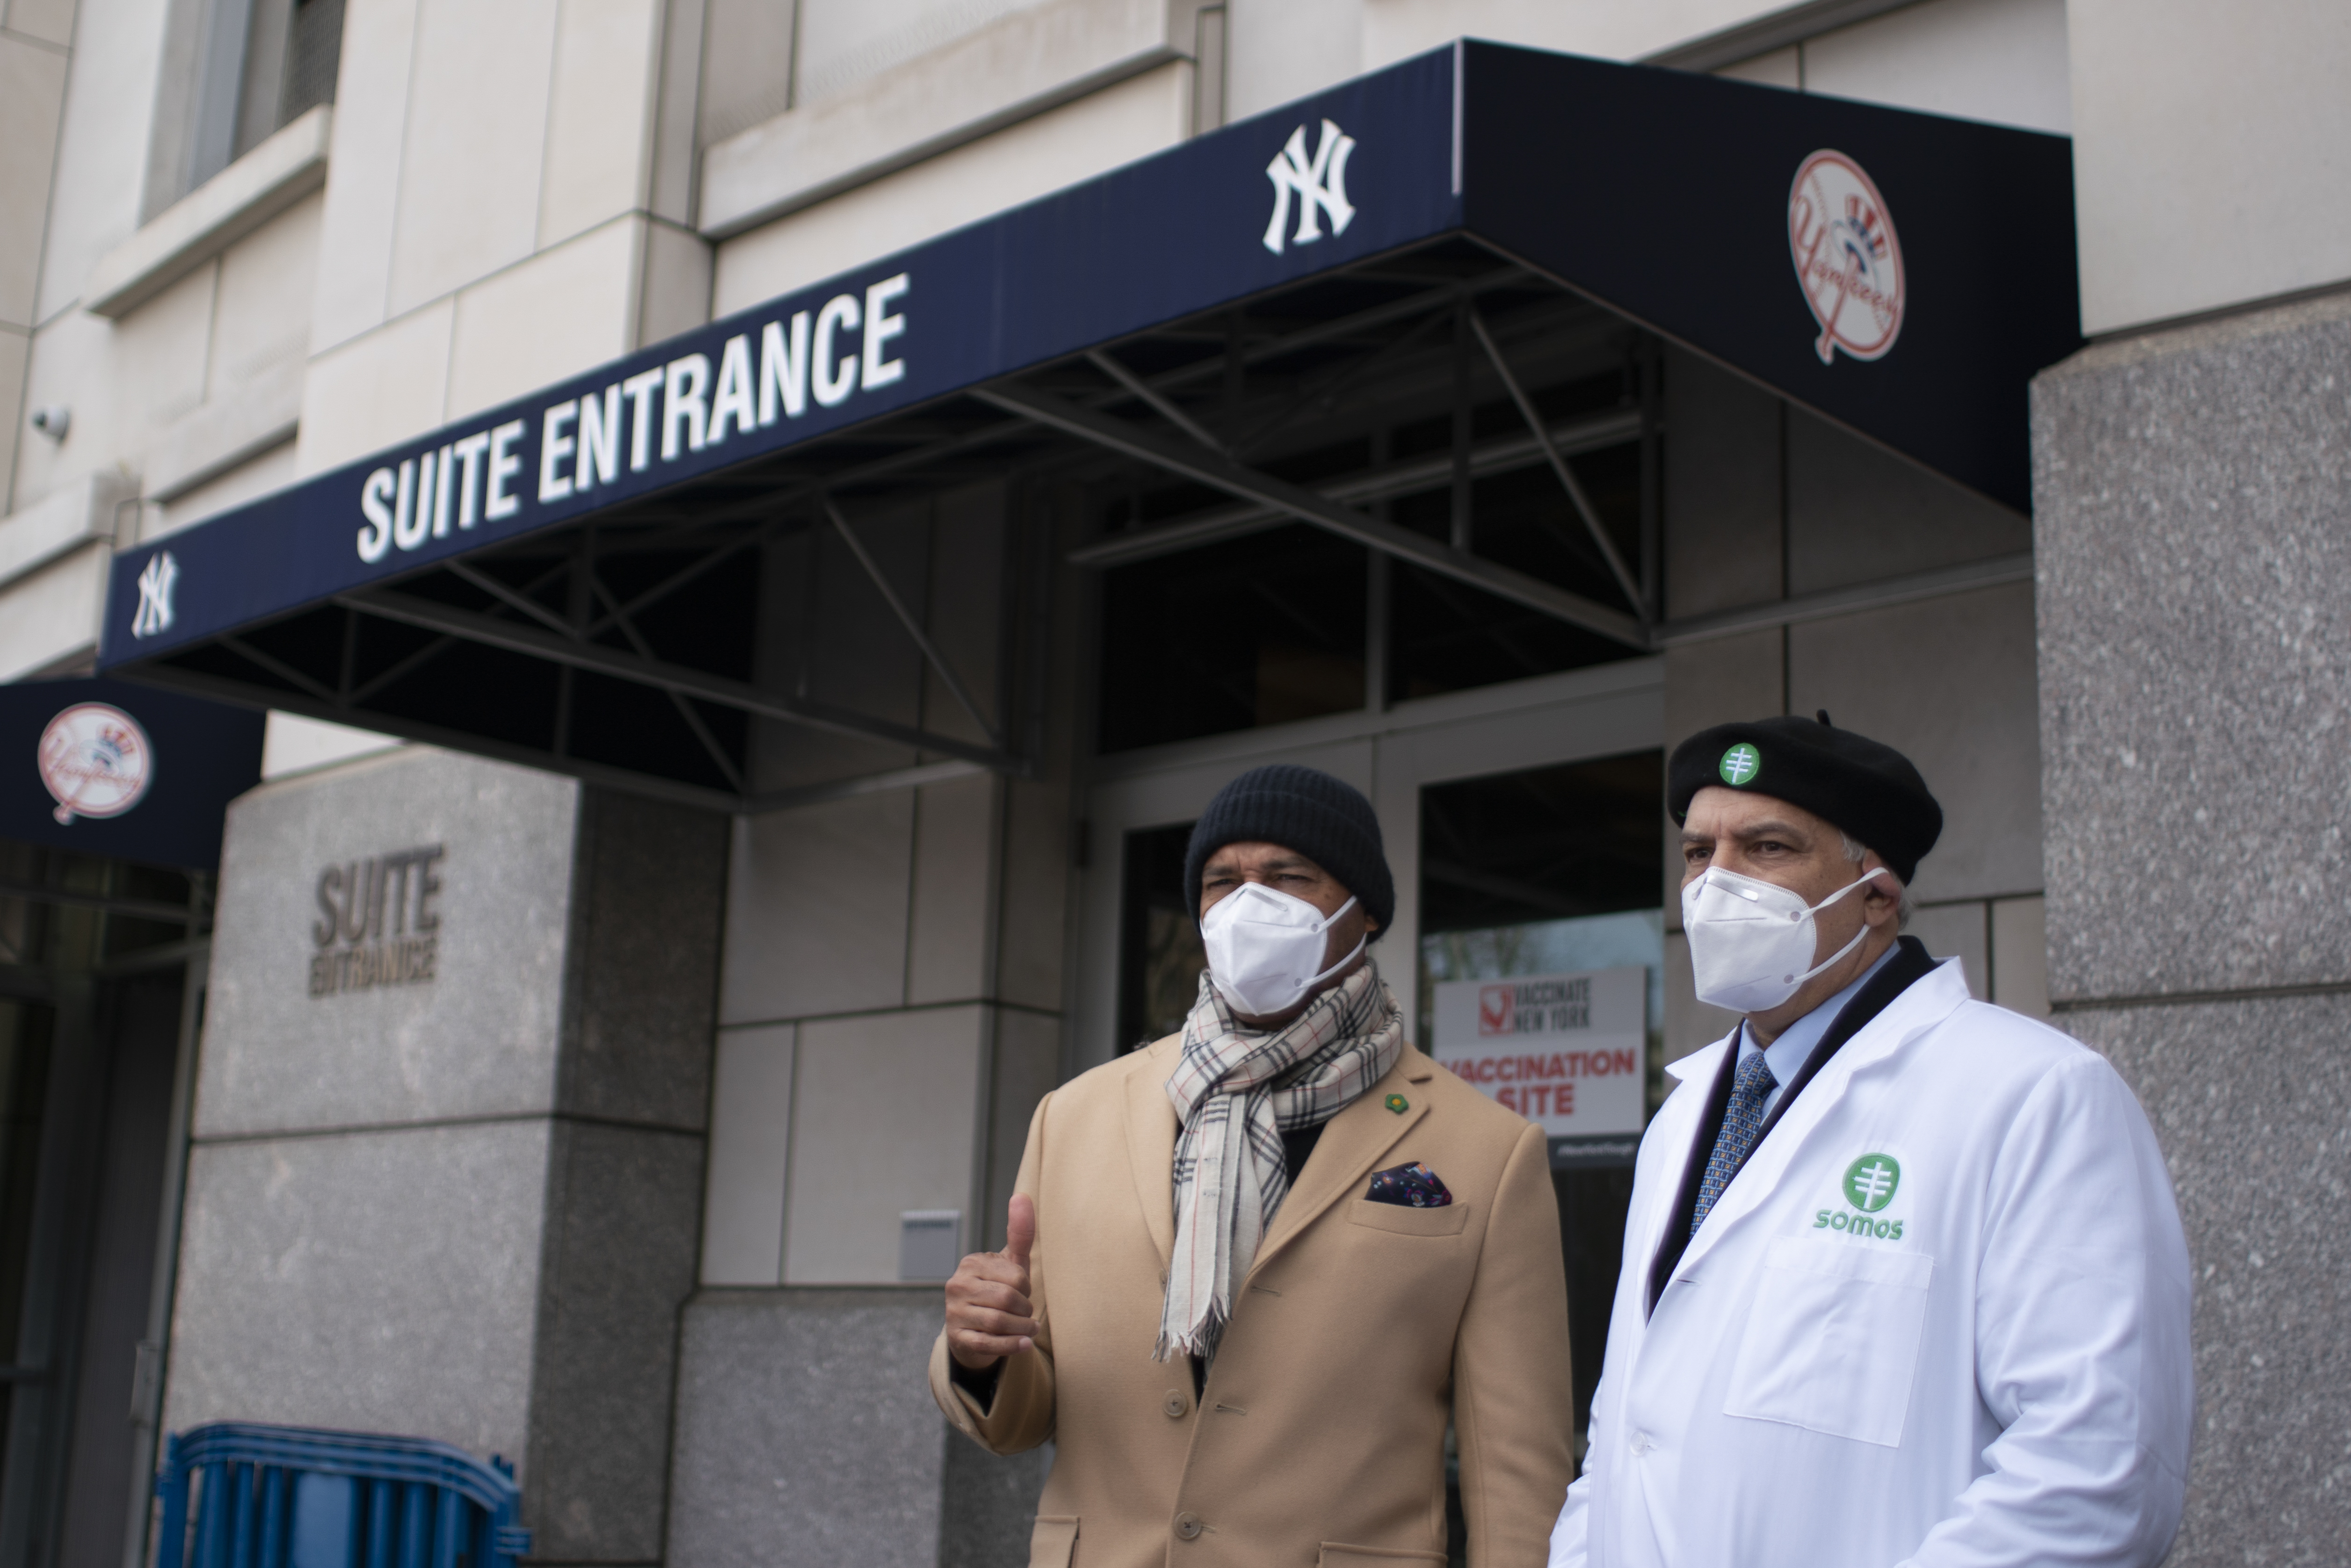 New Yorkers attend opening of COVID-19 vaccine site at Yankee Stadium